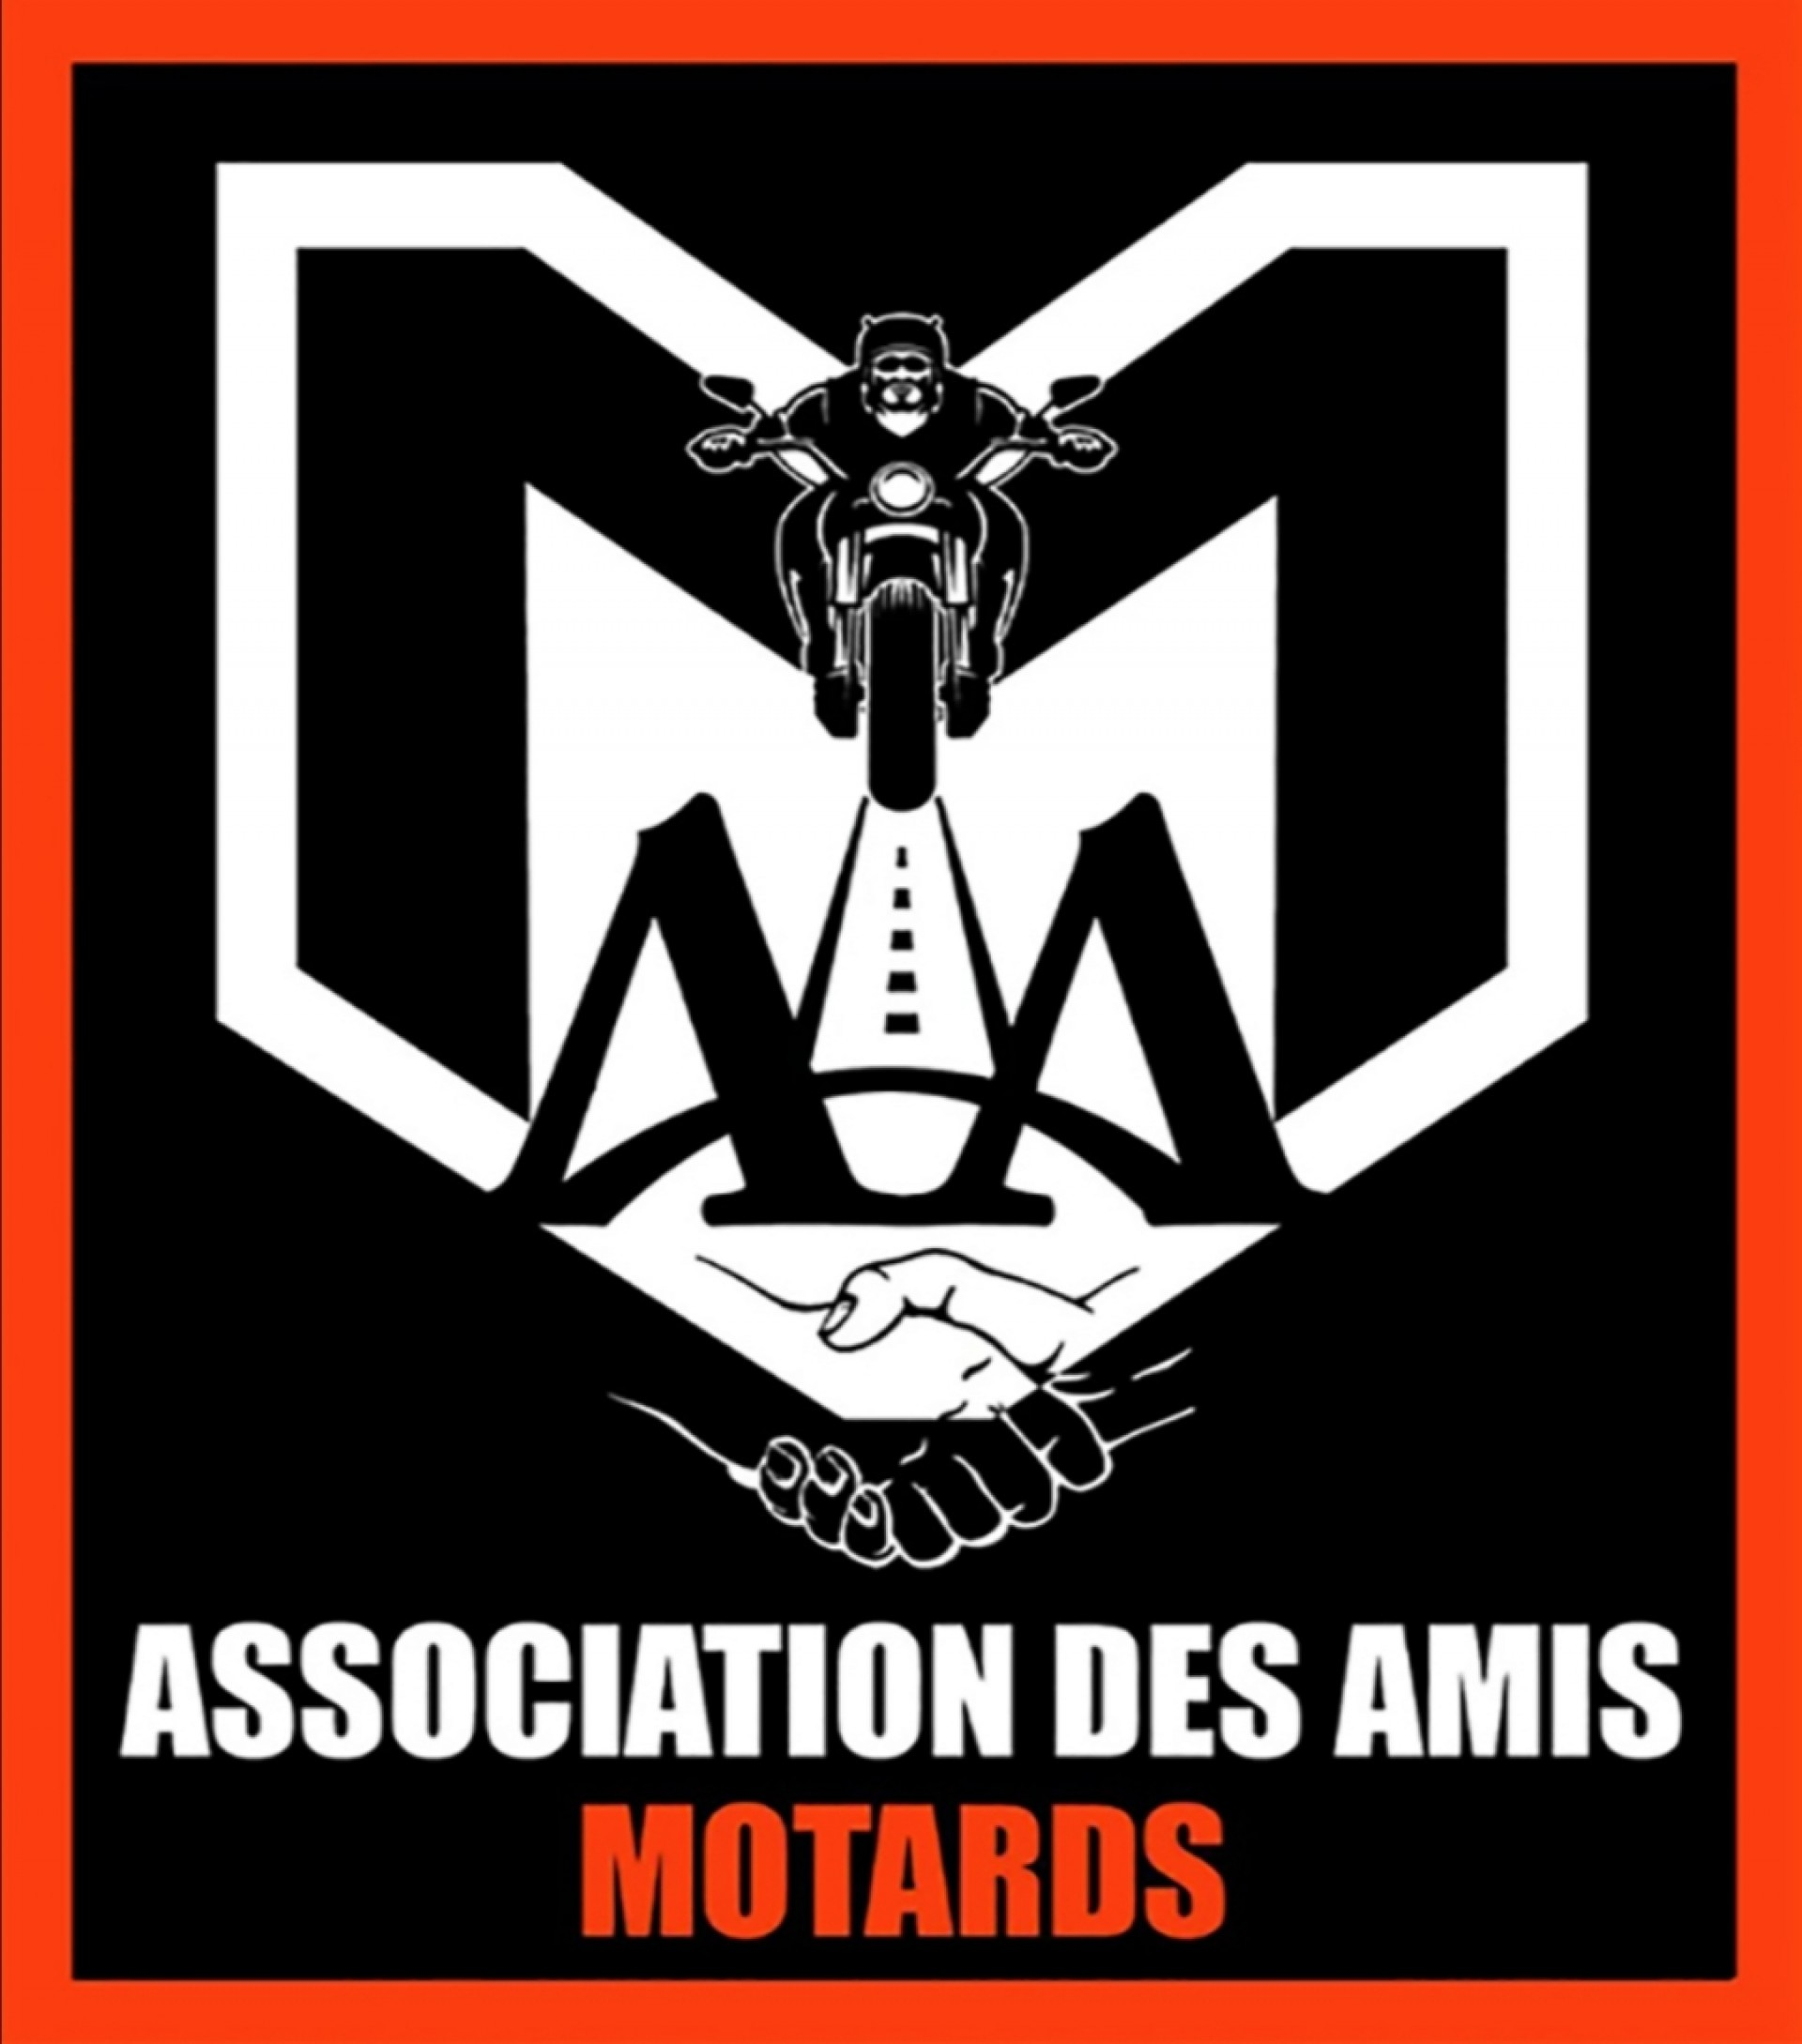 Association des amis motards Fés Méknes  logo